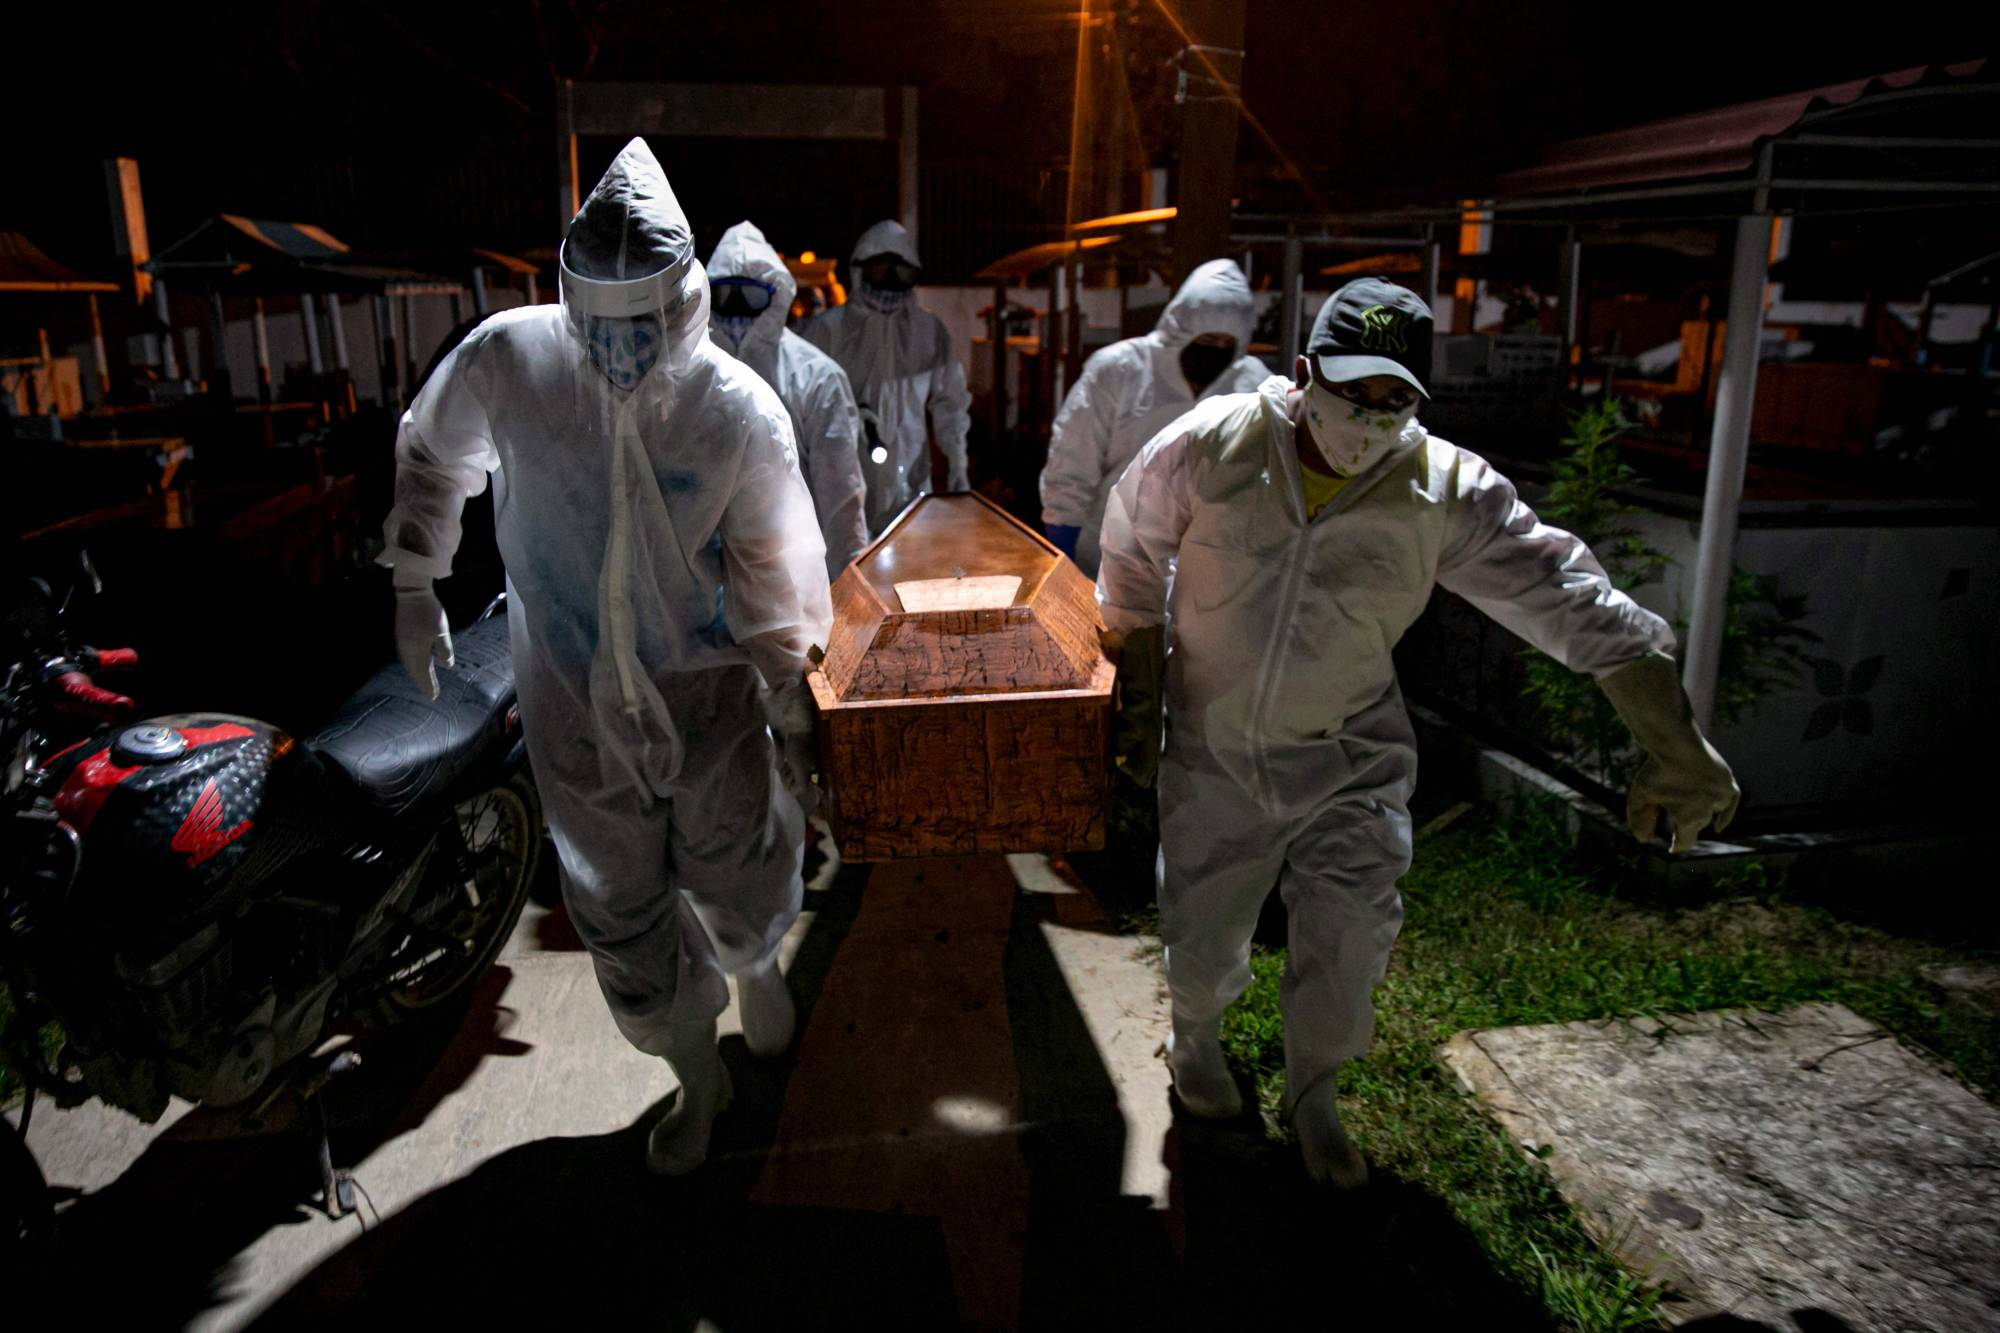 Gravediggers wearing protective clothing carry the coffin of a victim of the coronavirus for its burial at a cemetery in Breves, Brazil. | AFP-JIJI